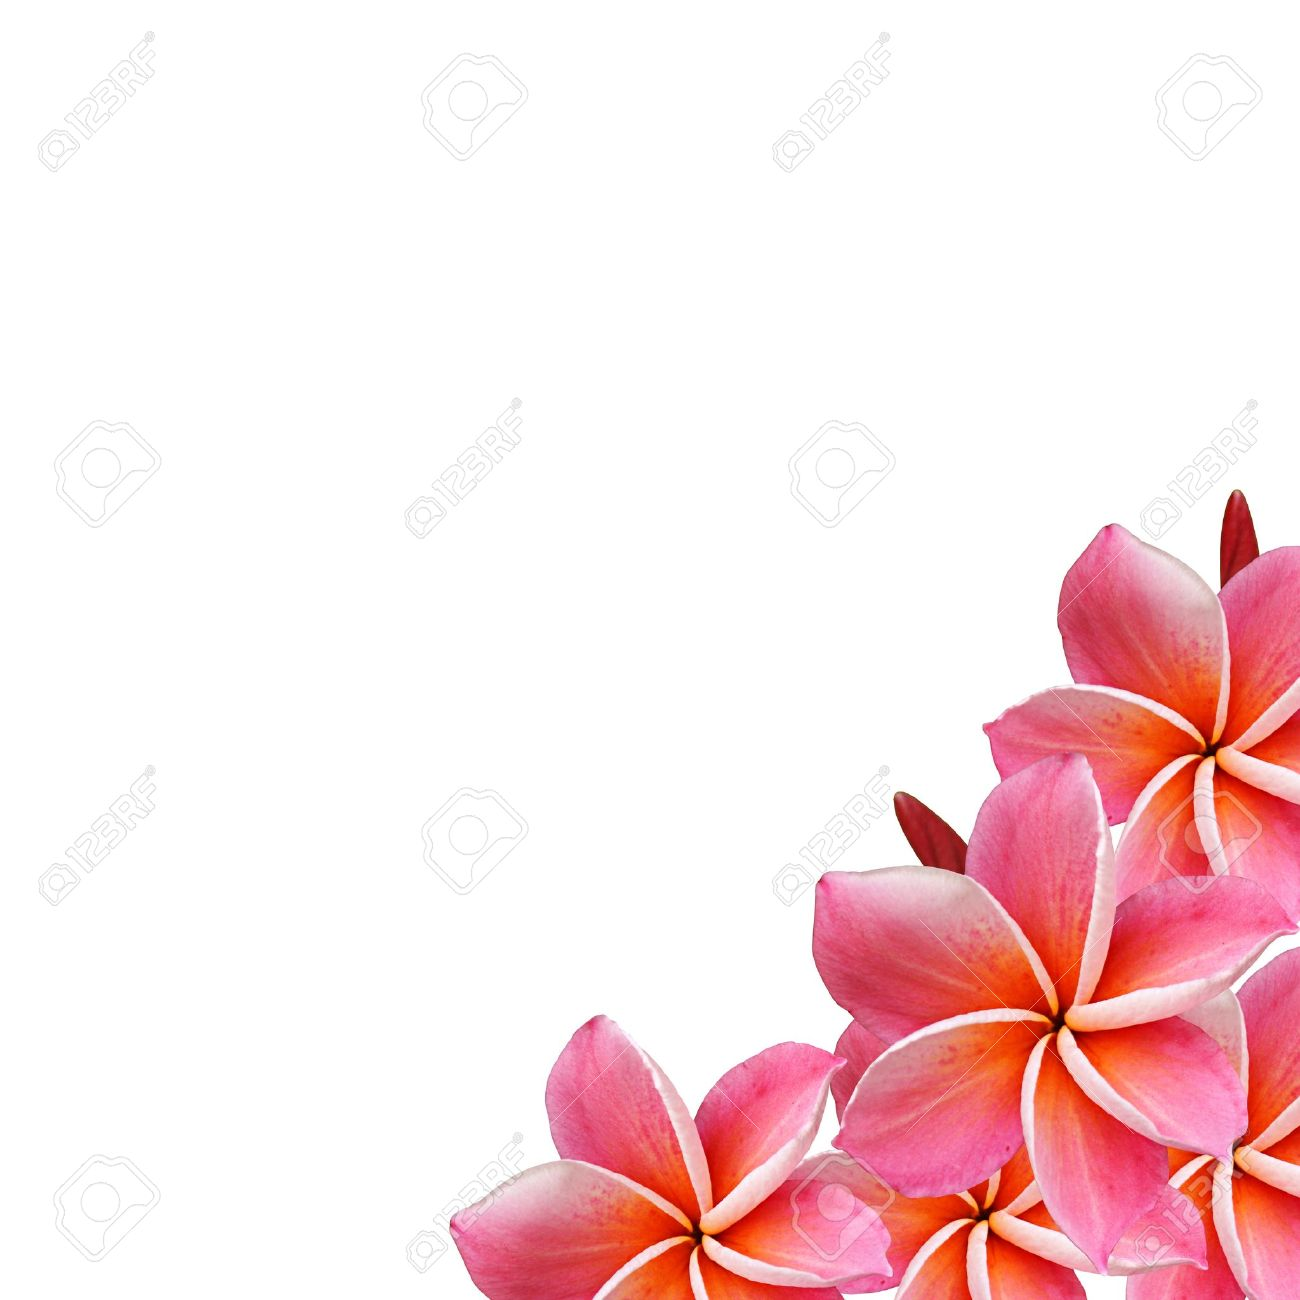 Pink hawaiian flower design 2018 images pictures pink tropical beautiful frangipani flowers pink hawaiian flower design izmirmasajfo